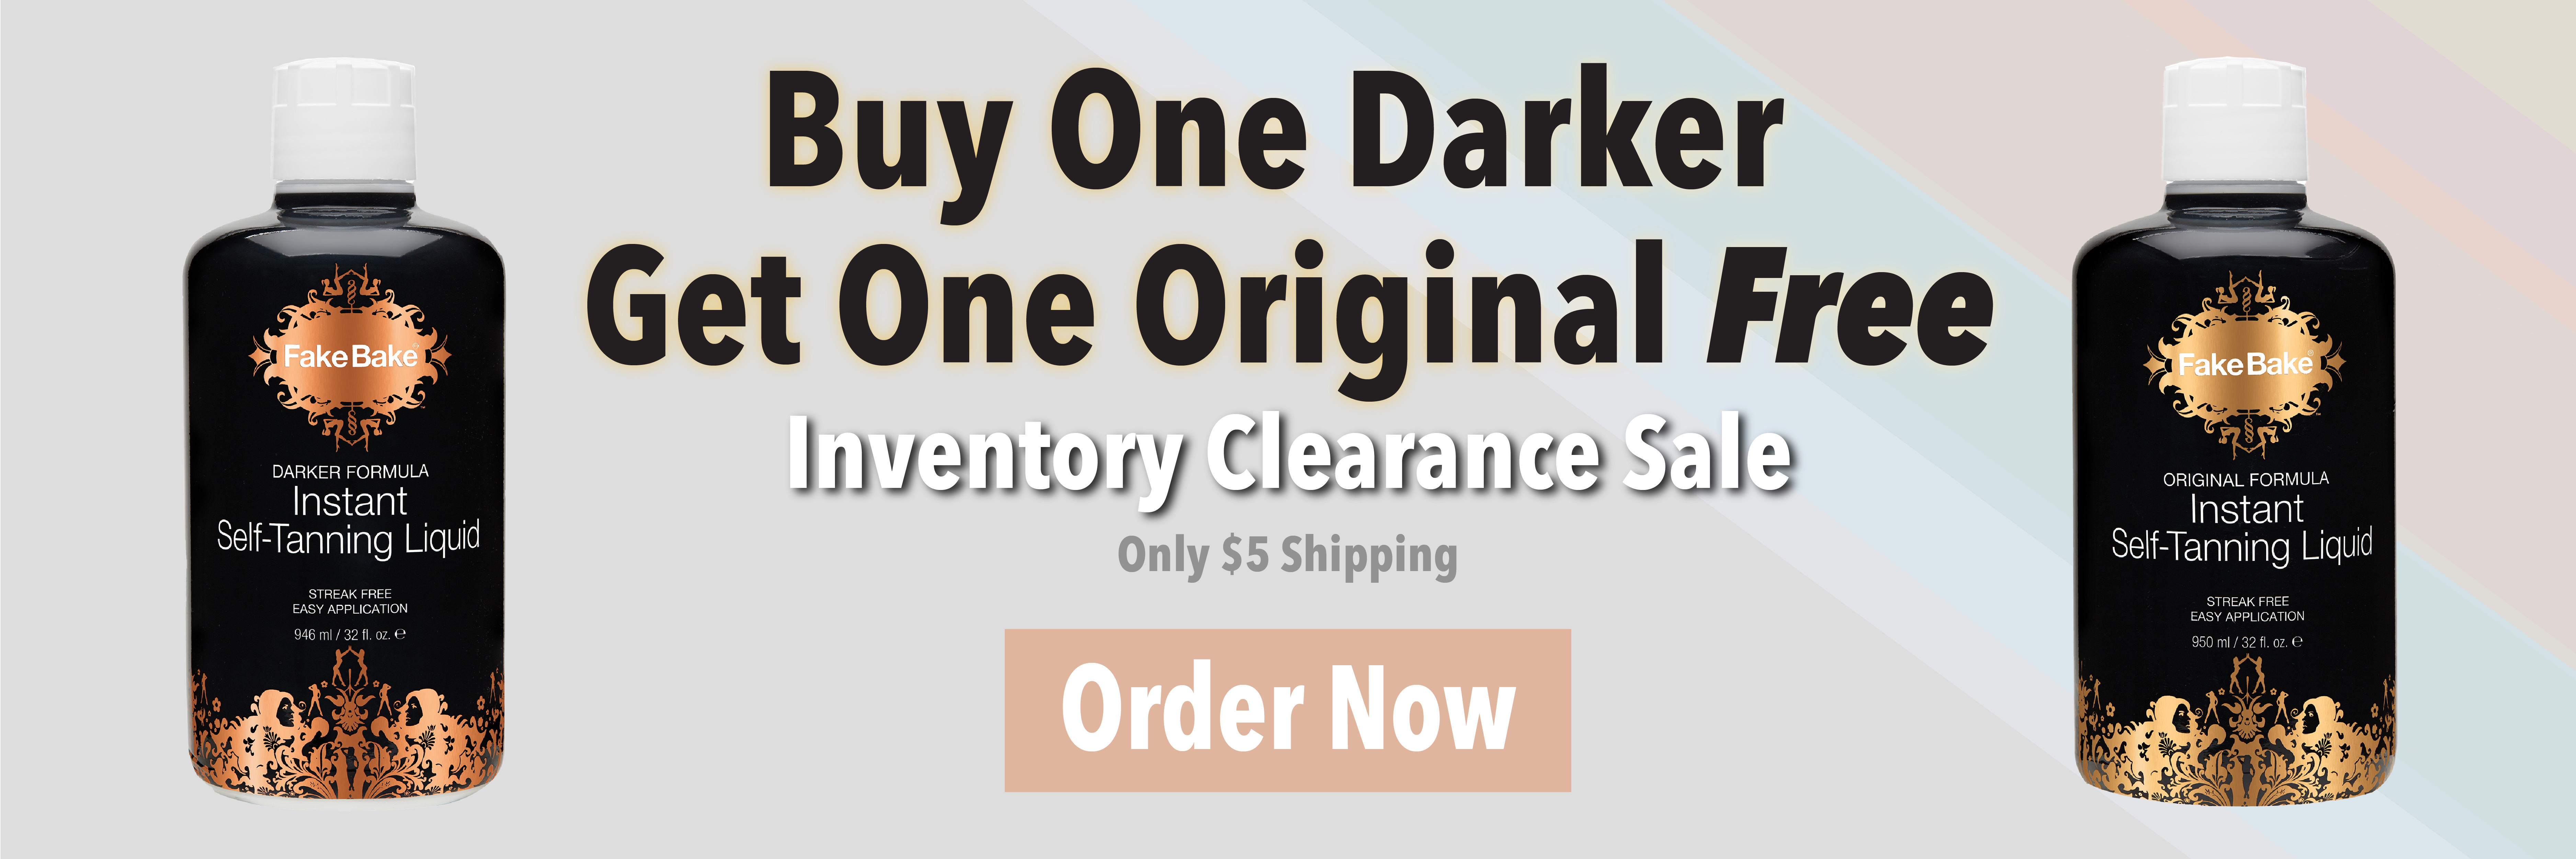 Buy 1 Darker Get 1 Original Free